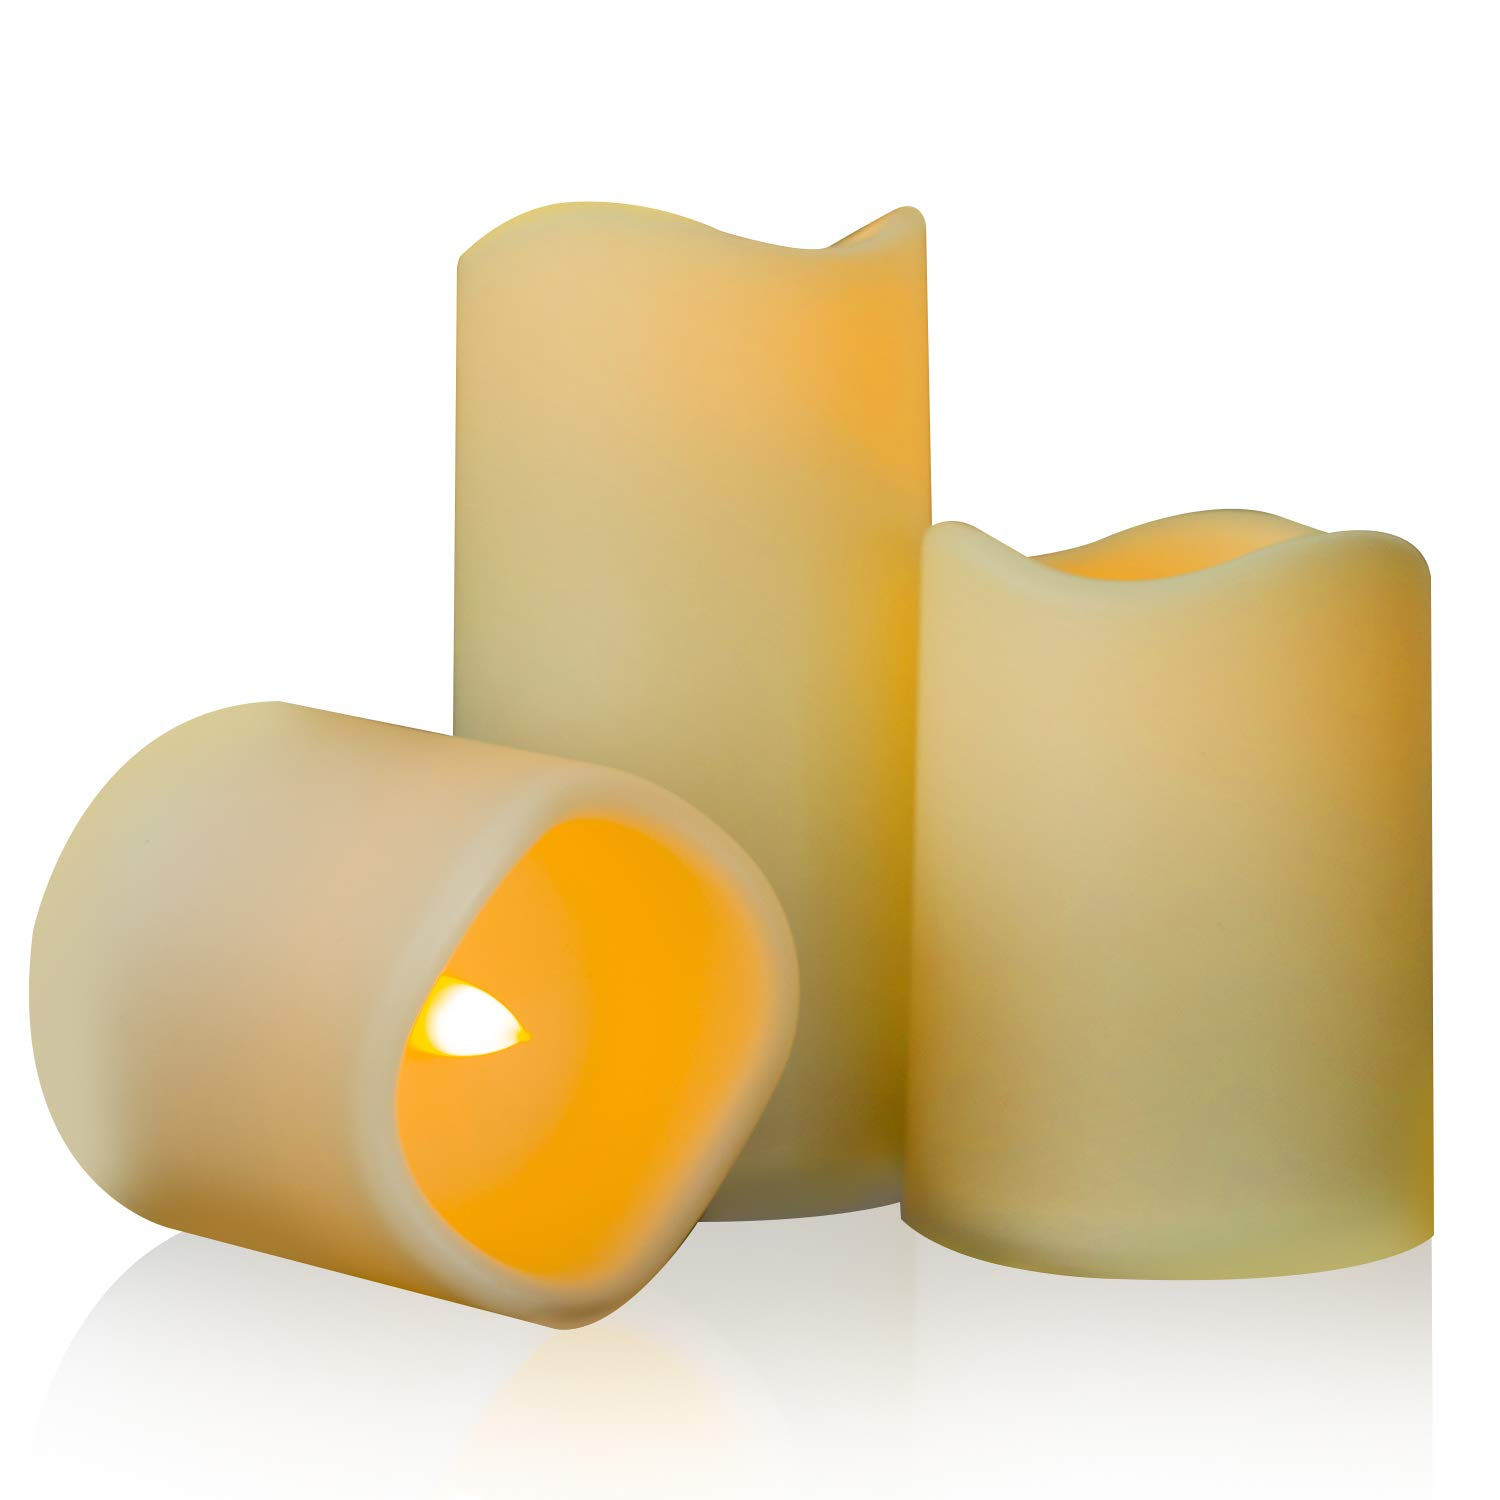 Beichi 3 Pack Outdoor Flameless Ivory Pillar Candles, Battery Operated LED Candles, Unscented Electric Plastic Candles, Home, Wedding, Party and Holiday Decoration, Warm Yellow Glow, D3 x H3/4''/6''